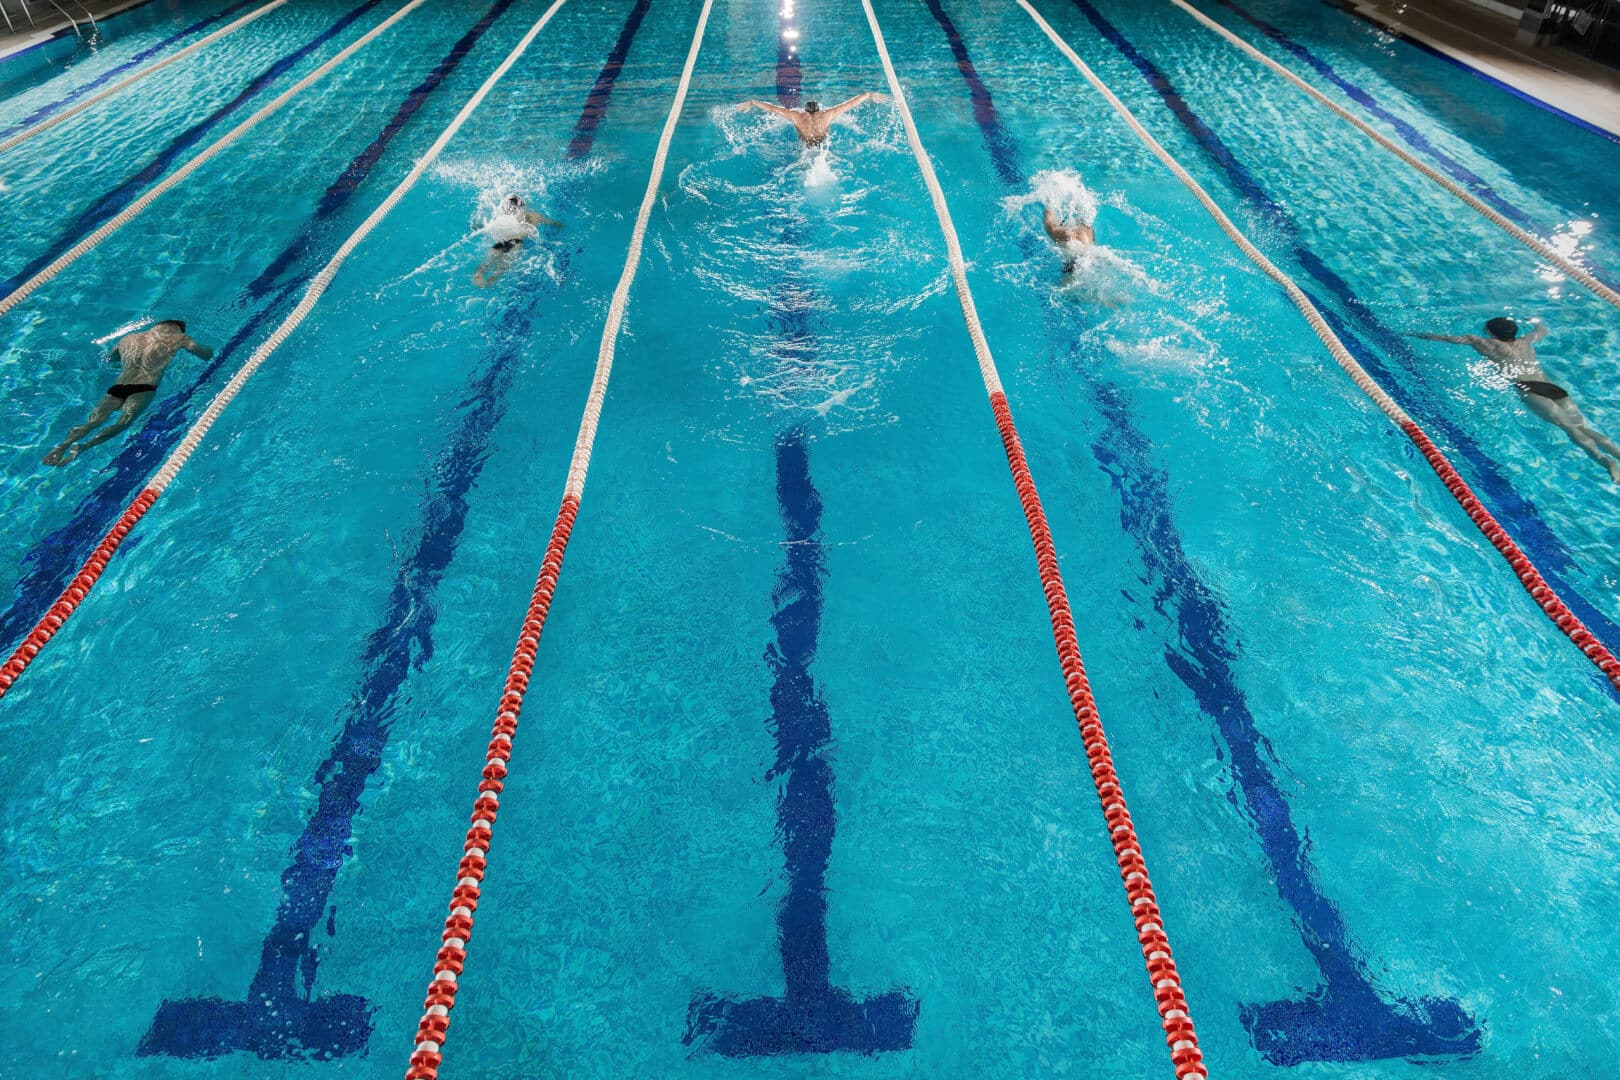 five swimmers racing against each other swiming pool